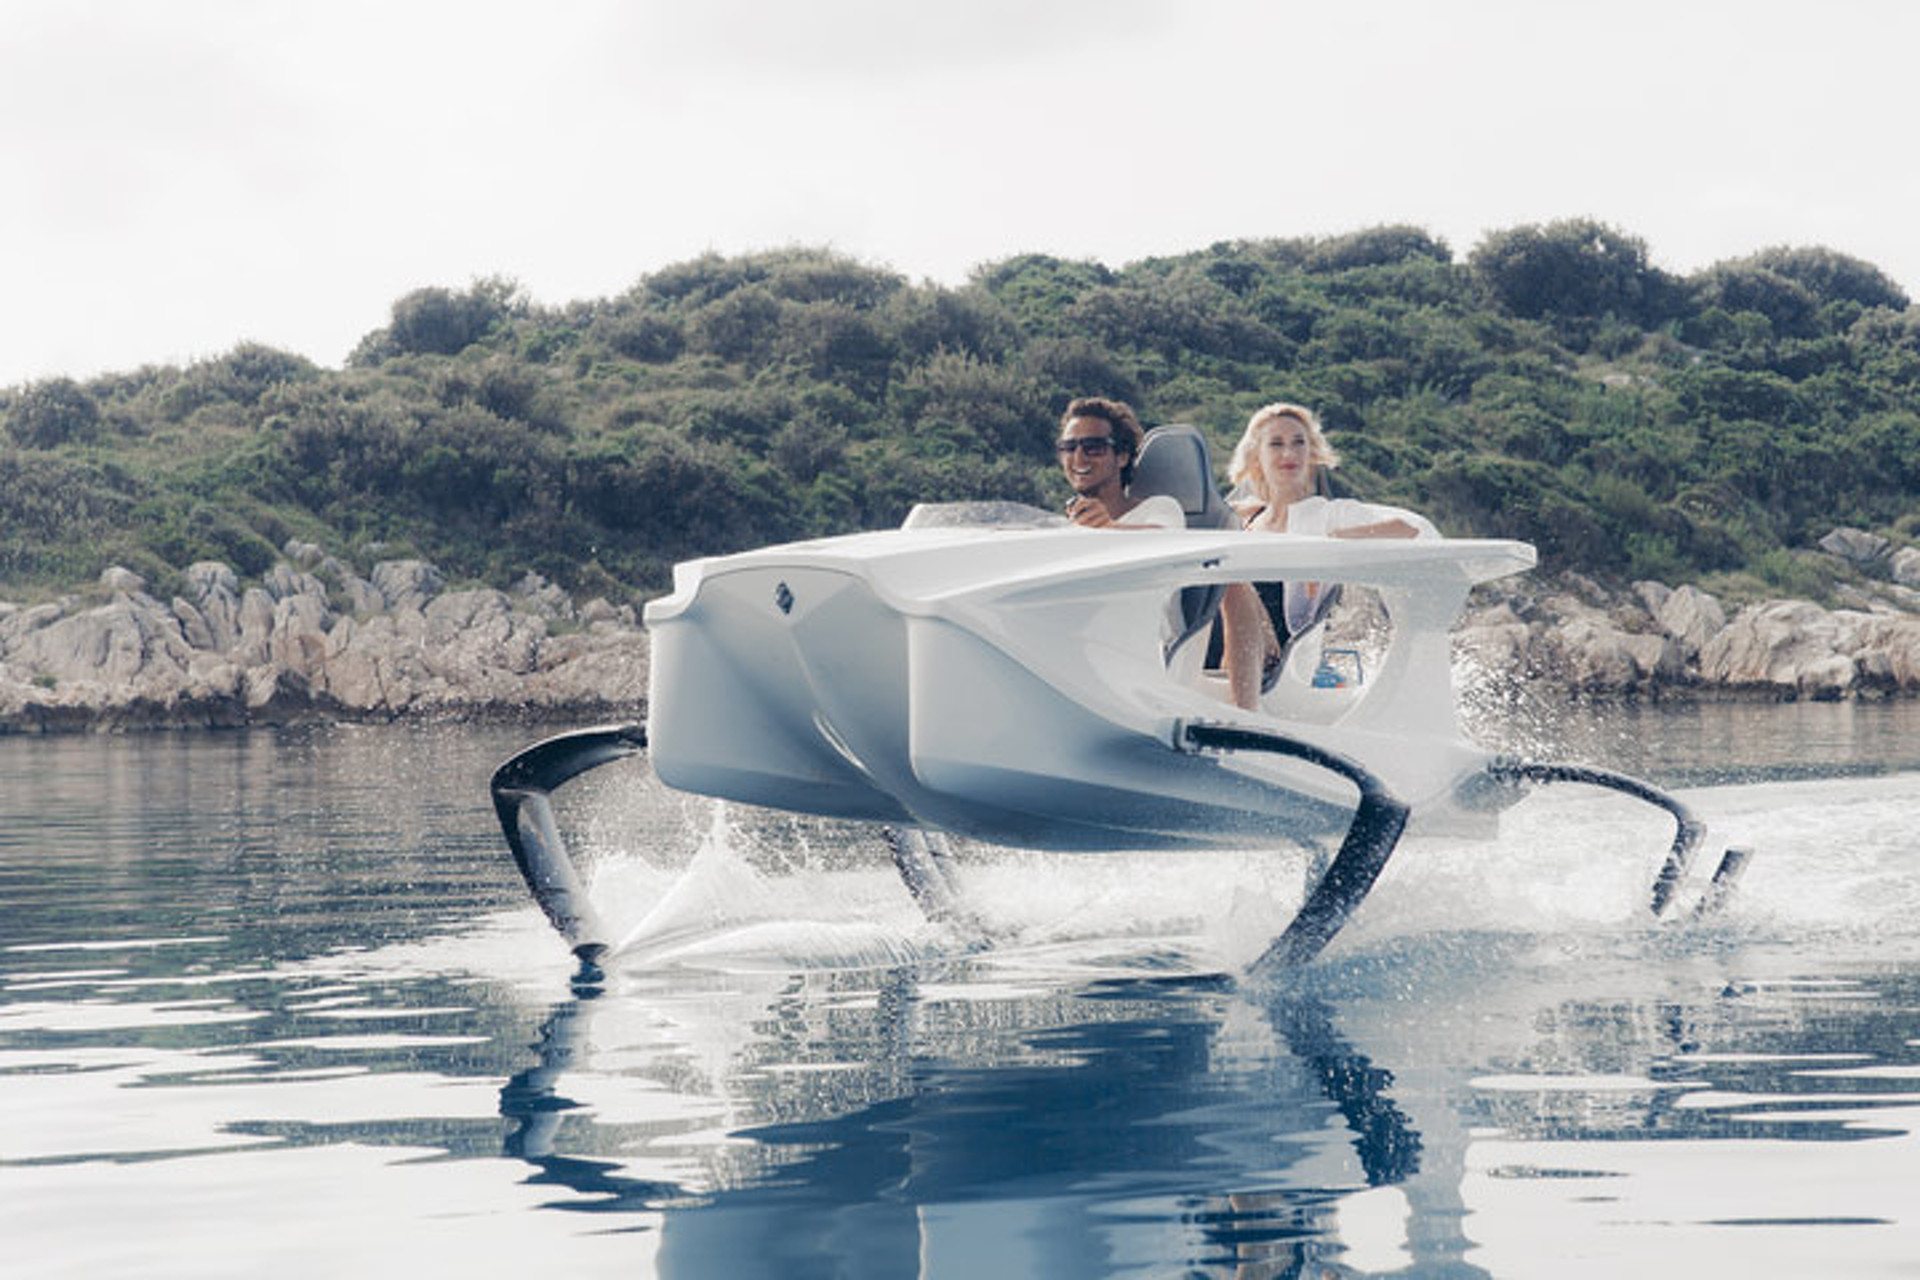 Slice Above the Waves in the World's Weirdest Aquatic Machine